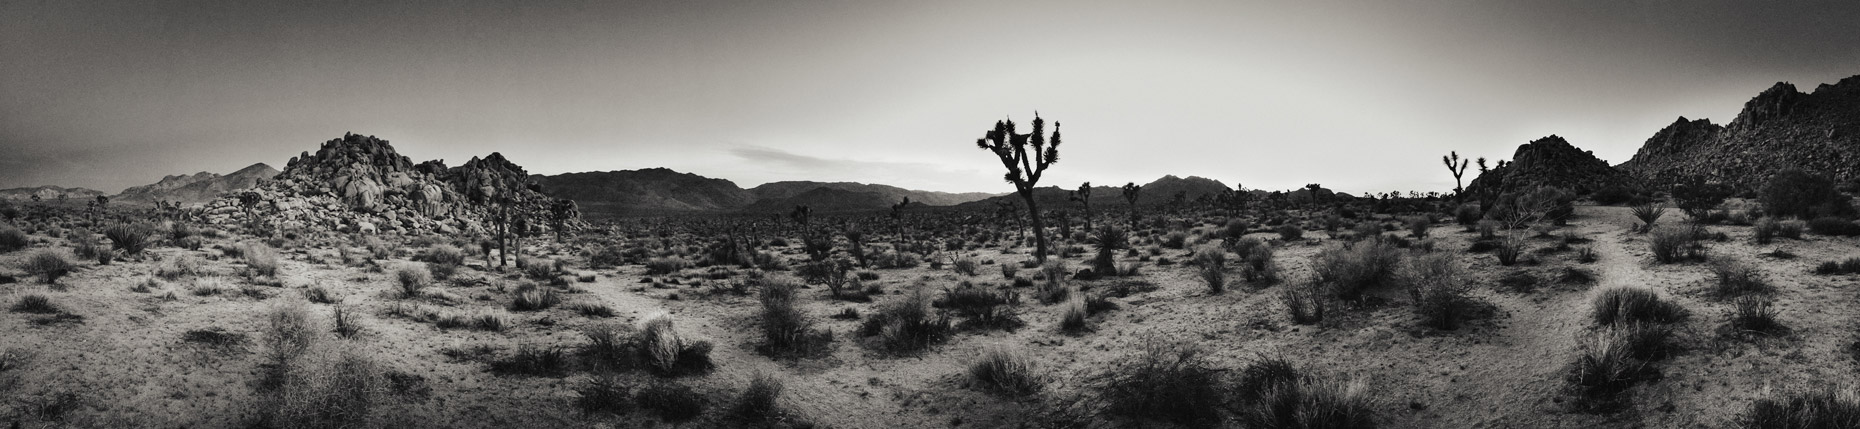 JoshuaTree_Panoramic